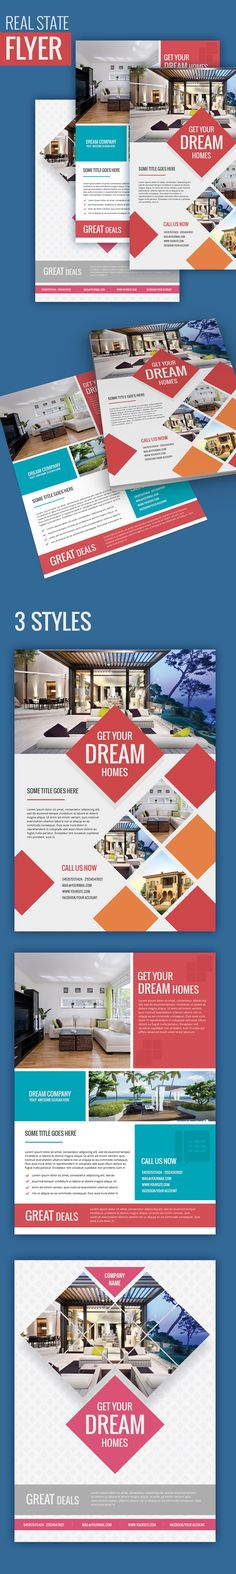 Psd Real Estate Flyers on Behance